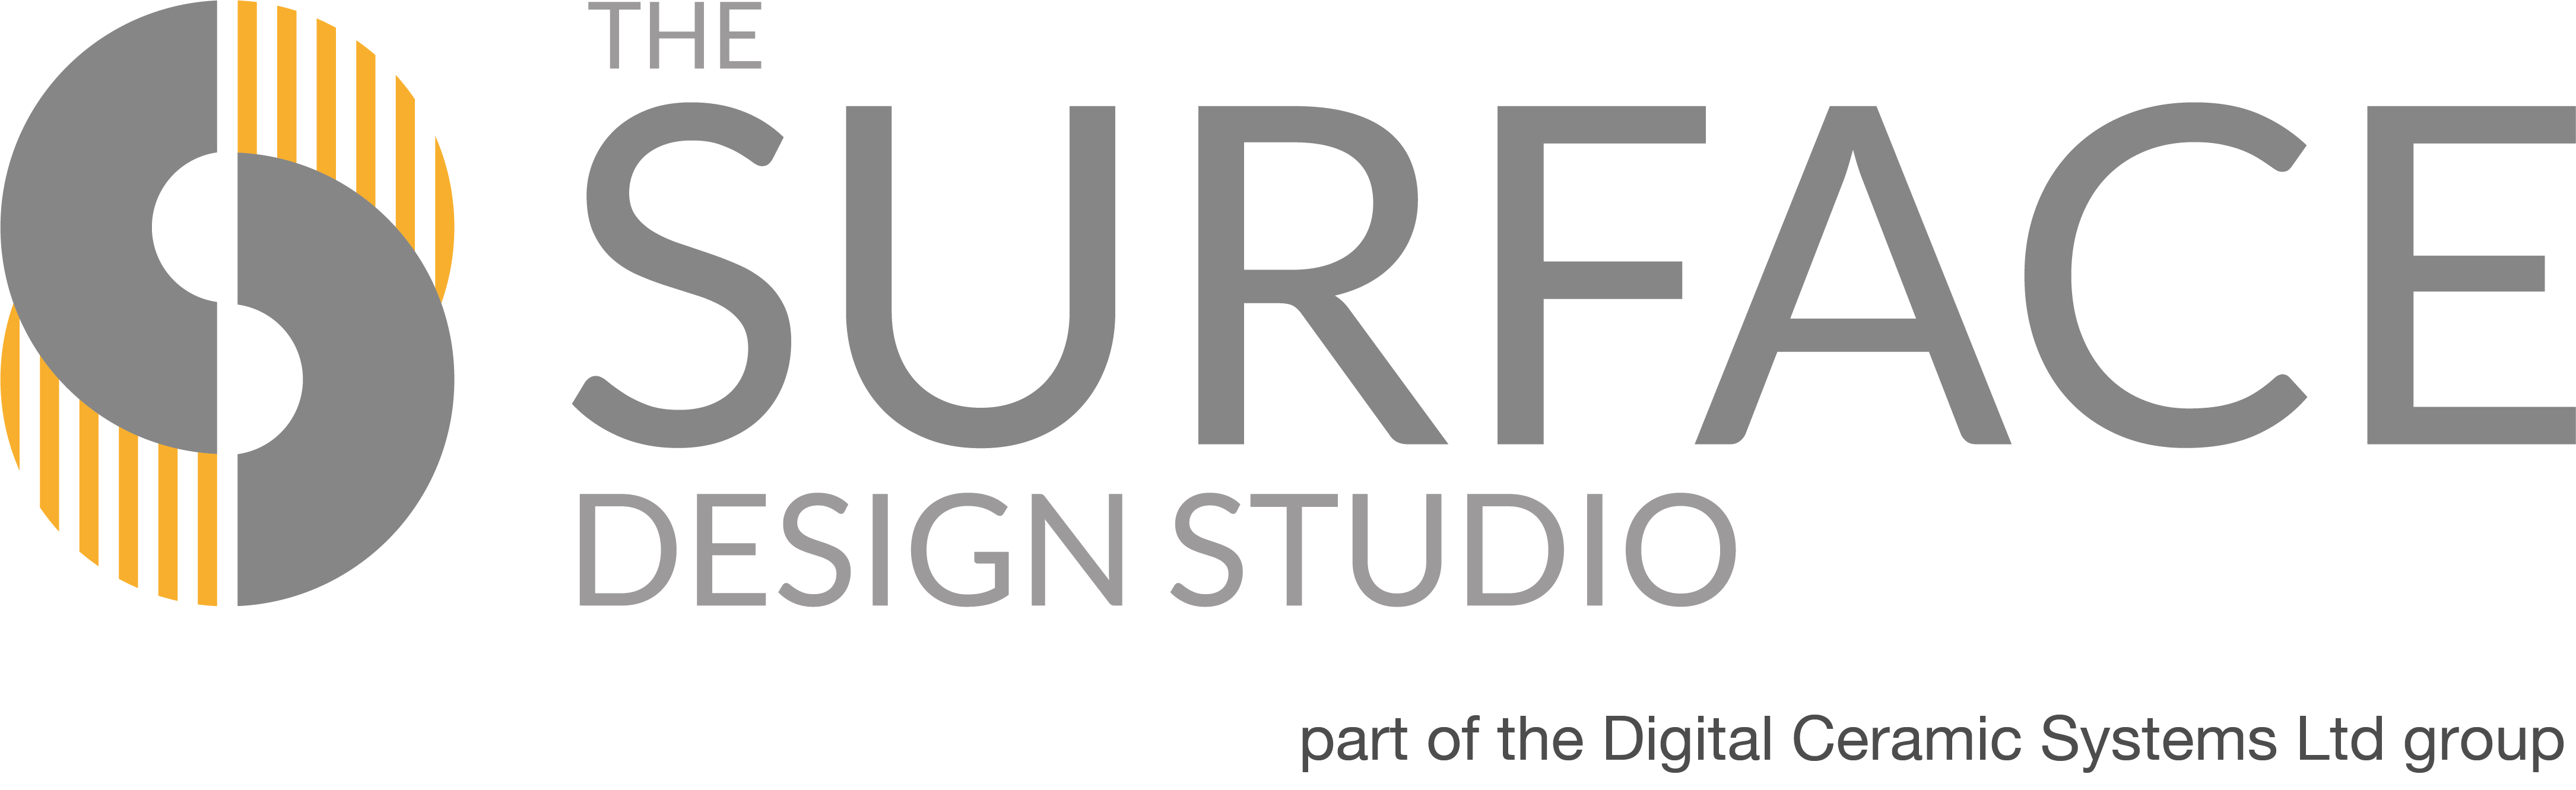 The Surface Design Studio logo